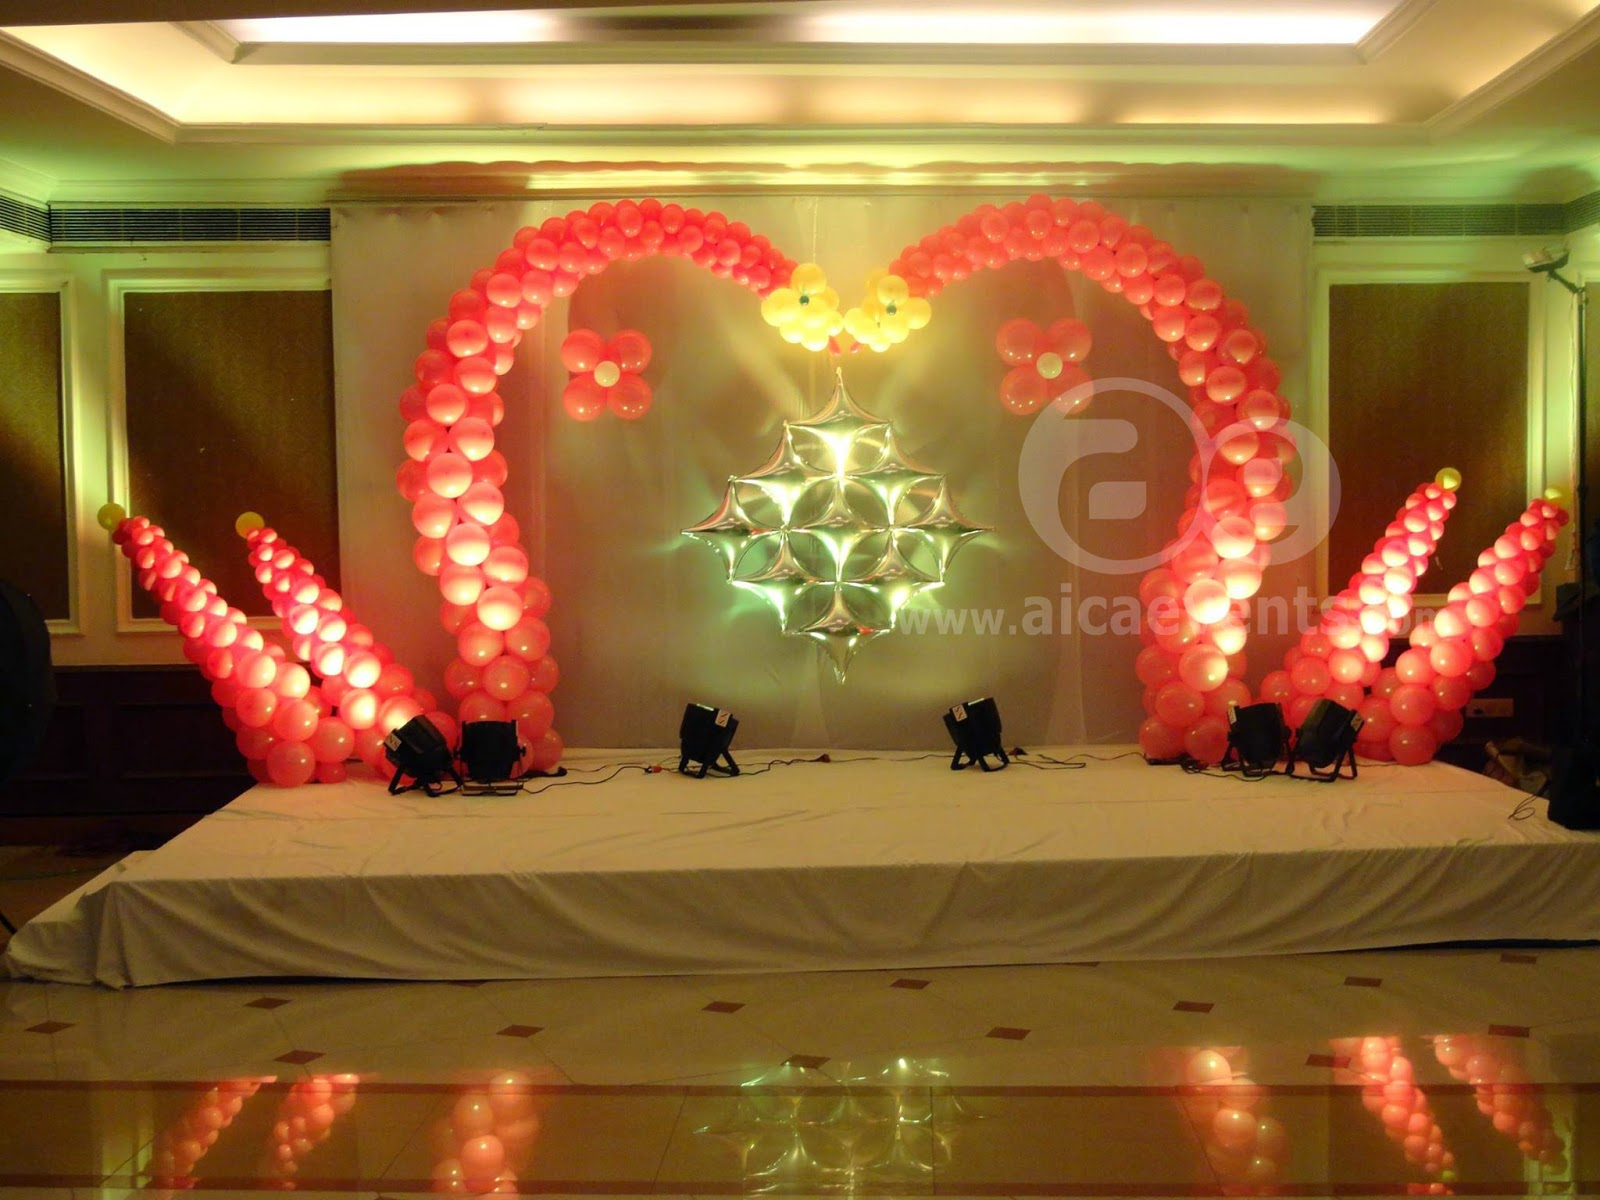 Aicaevents balloon decorations with different stage back for Balloon decoration for birthday at home